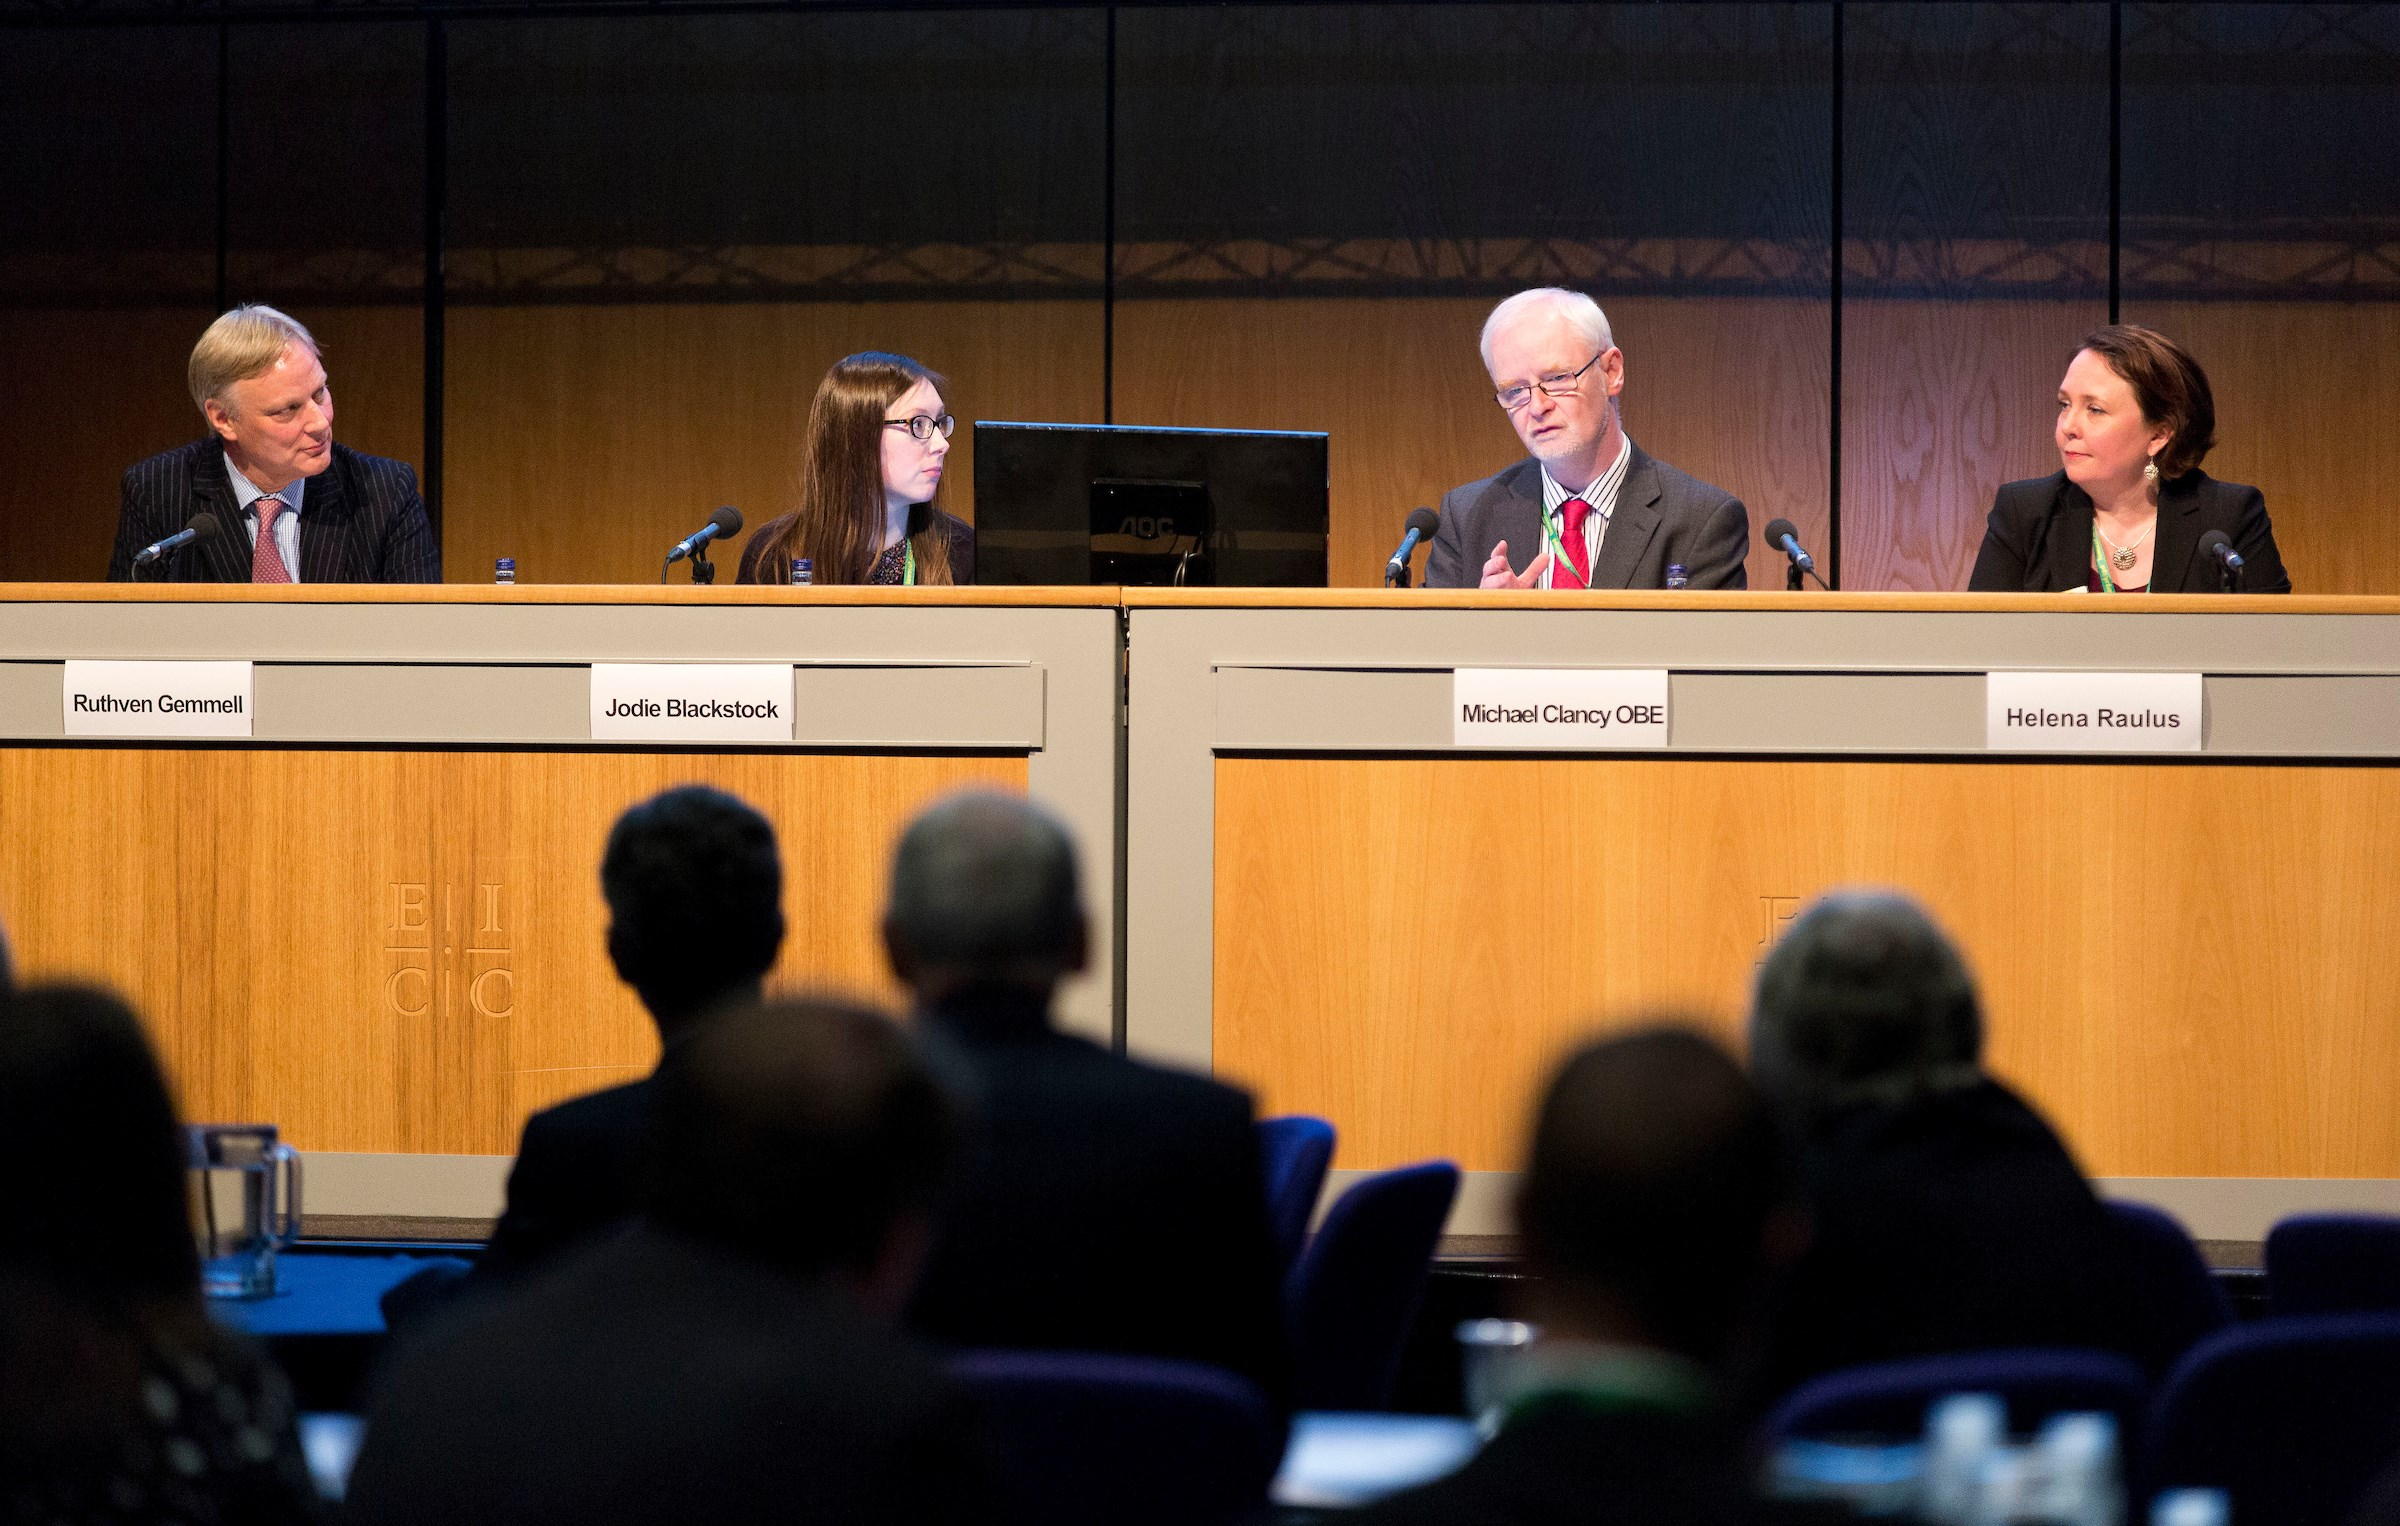 The impact of Brexit on the justice system panellists Ruthven Gemmell, Jodie Blackstock, Michael Clancy and Helena Raulus